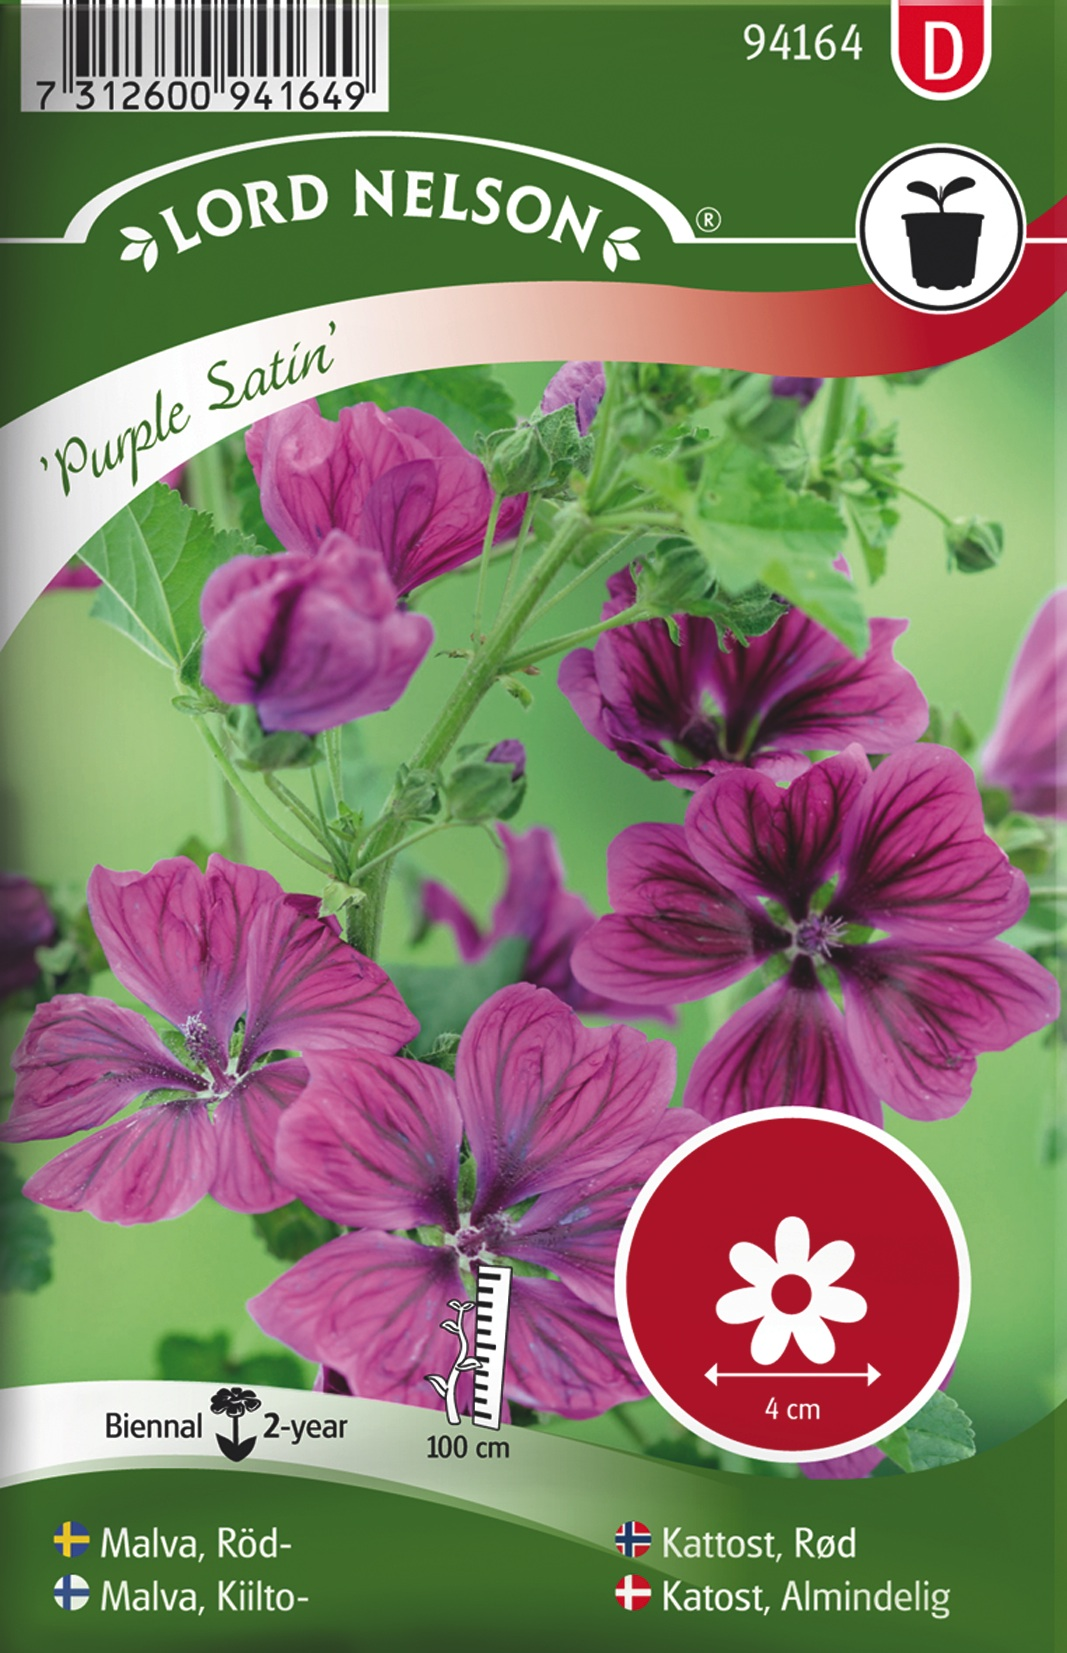 Malva, kiilto-, purple satin